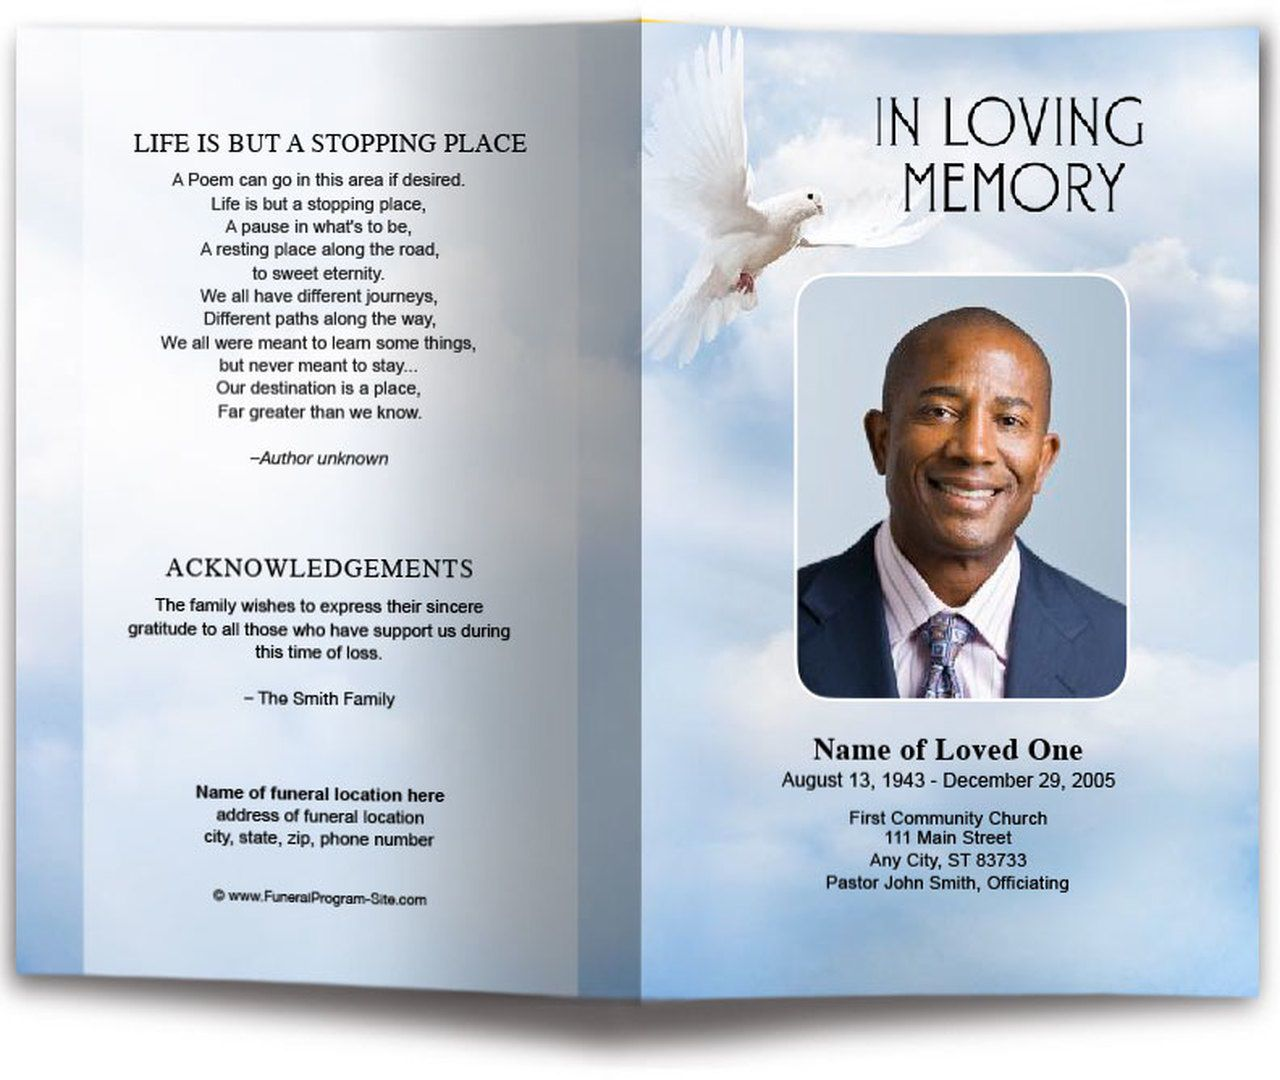 010 Incredible Funeral Program Template Free High Def  Printable DesignFull